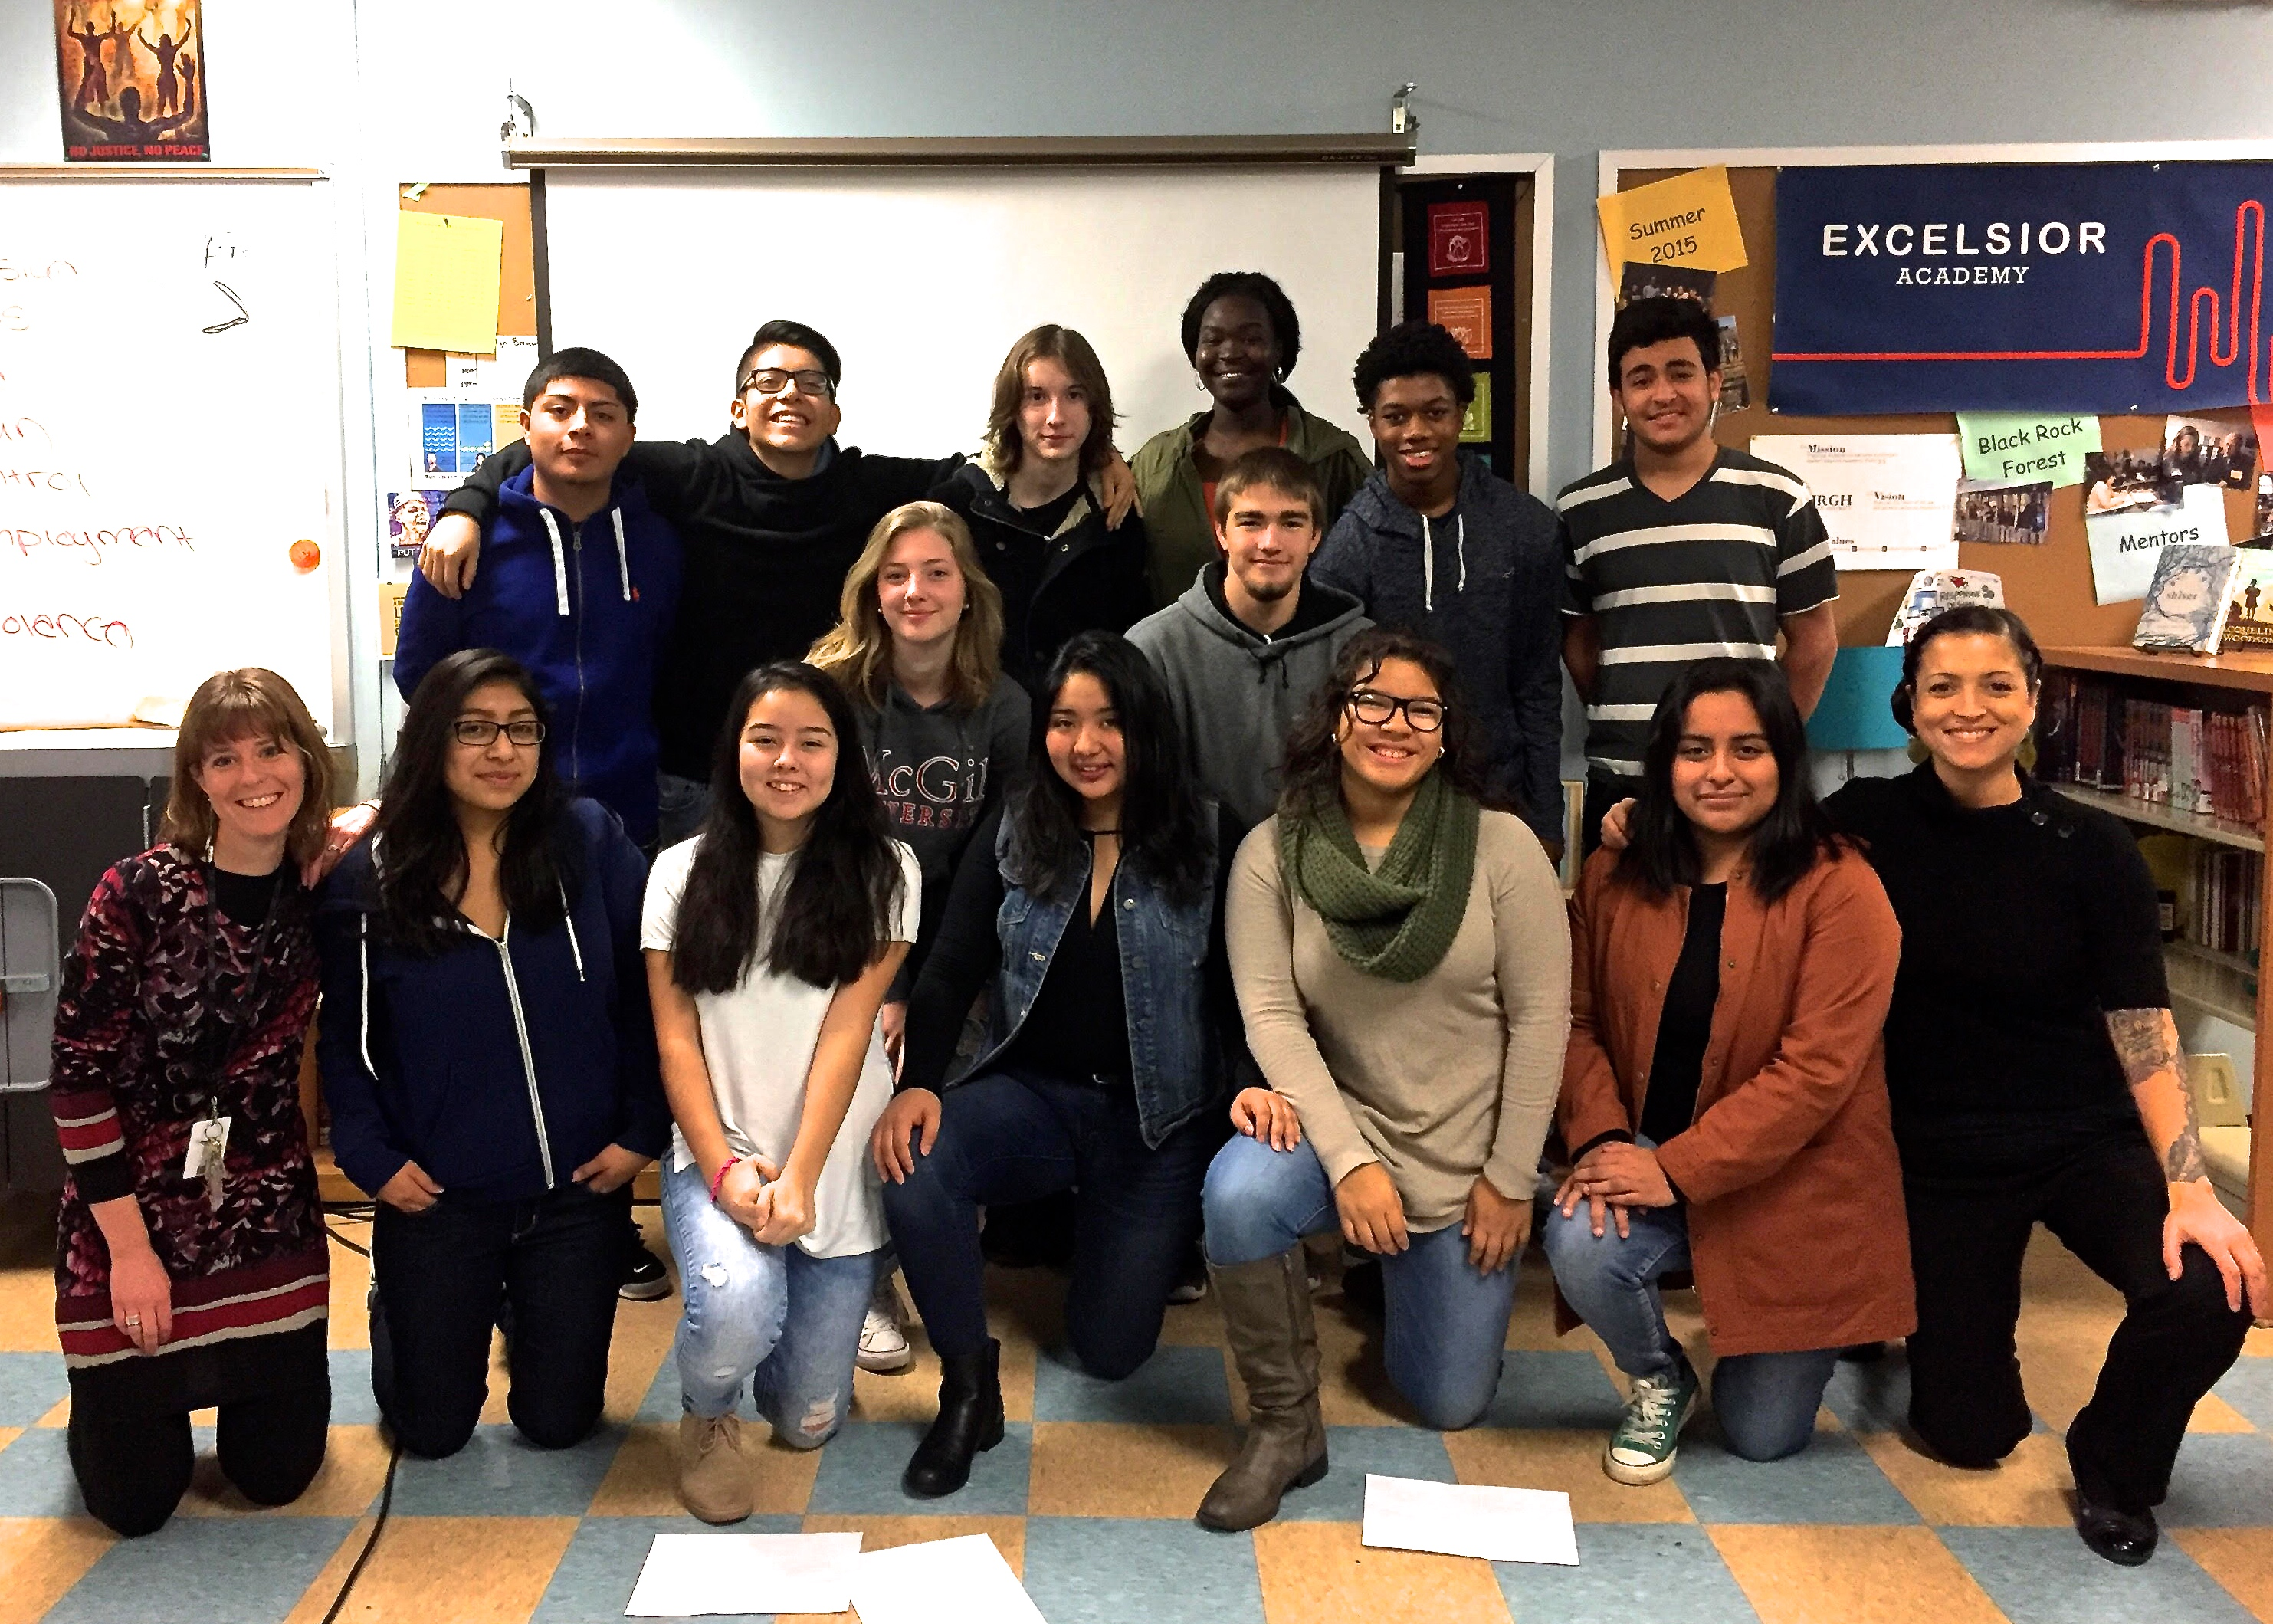 And our 2017 summer school partner is…Excelsior Academy in Newburgh, New York!